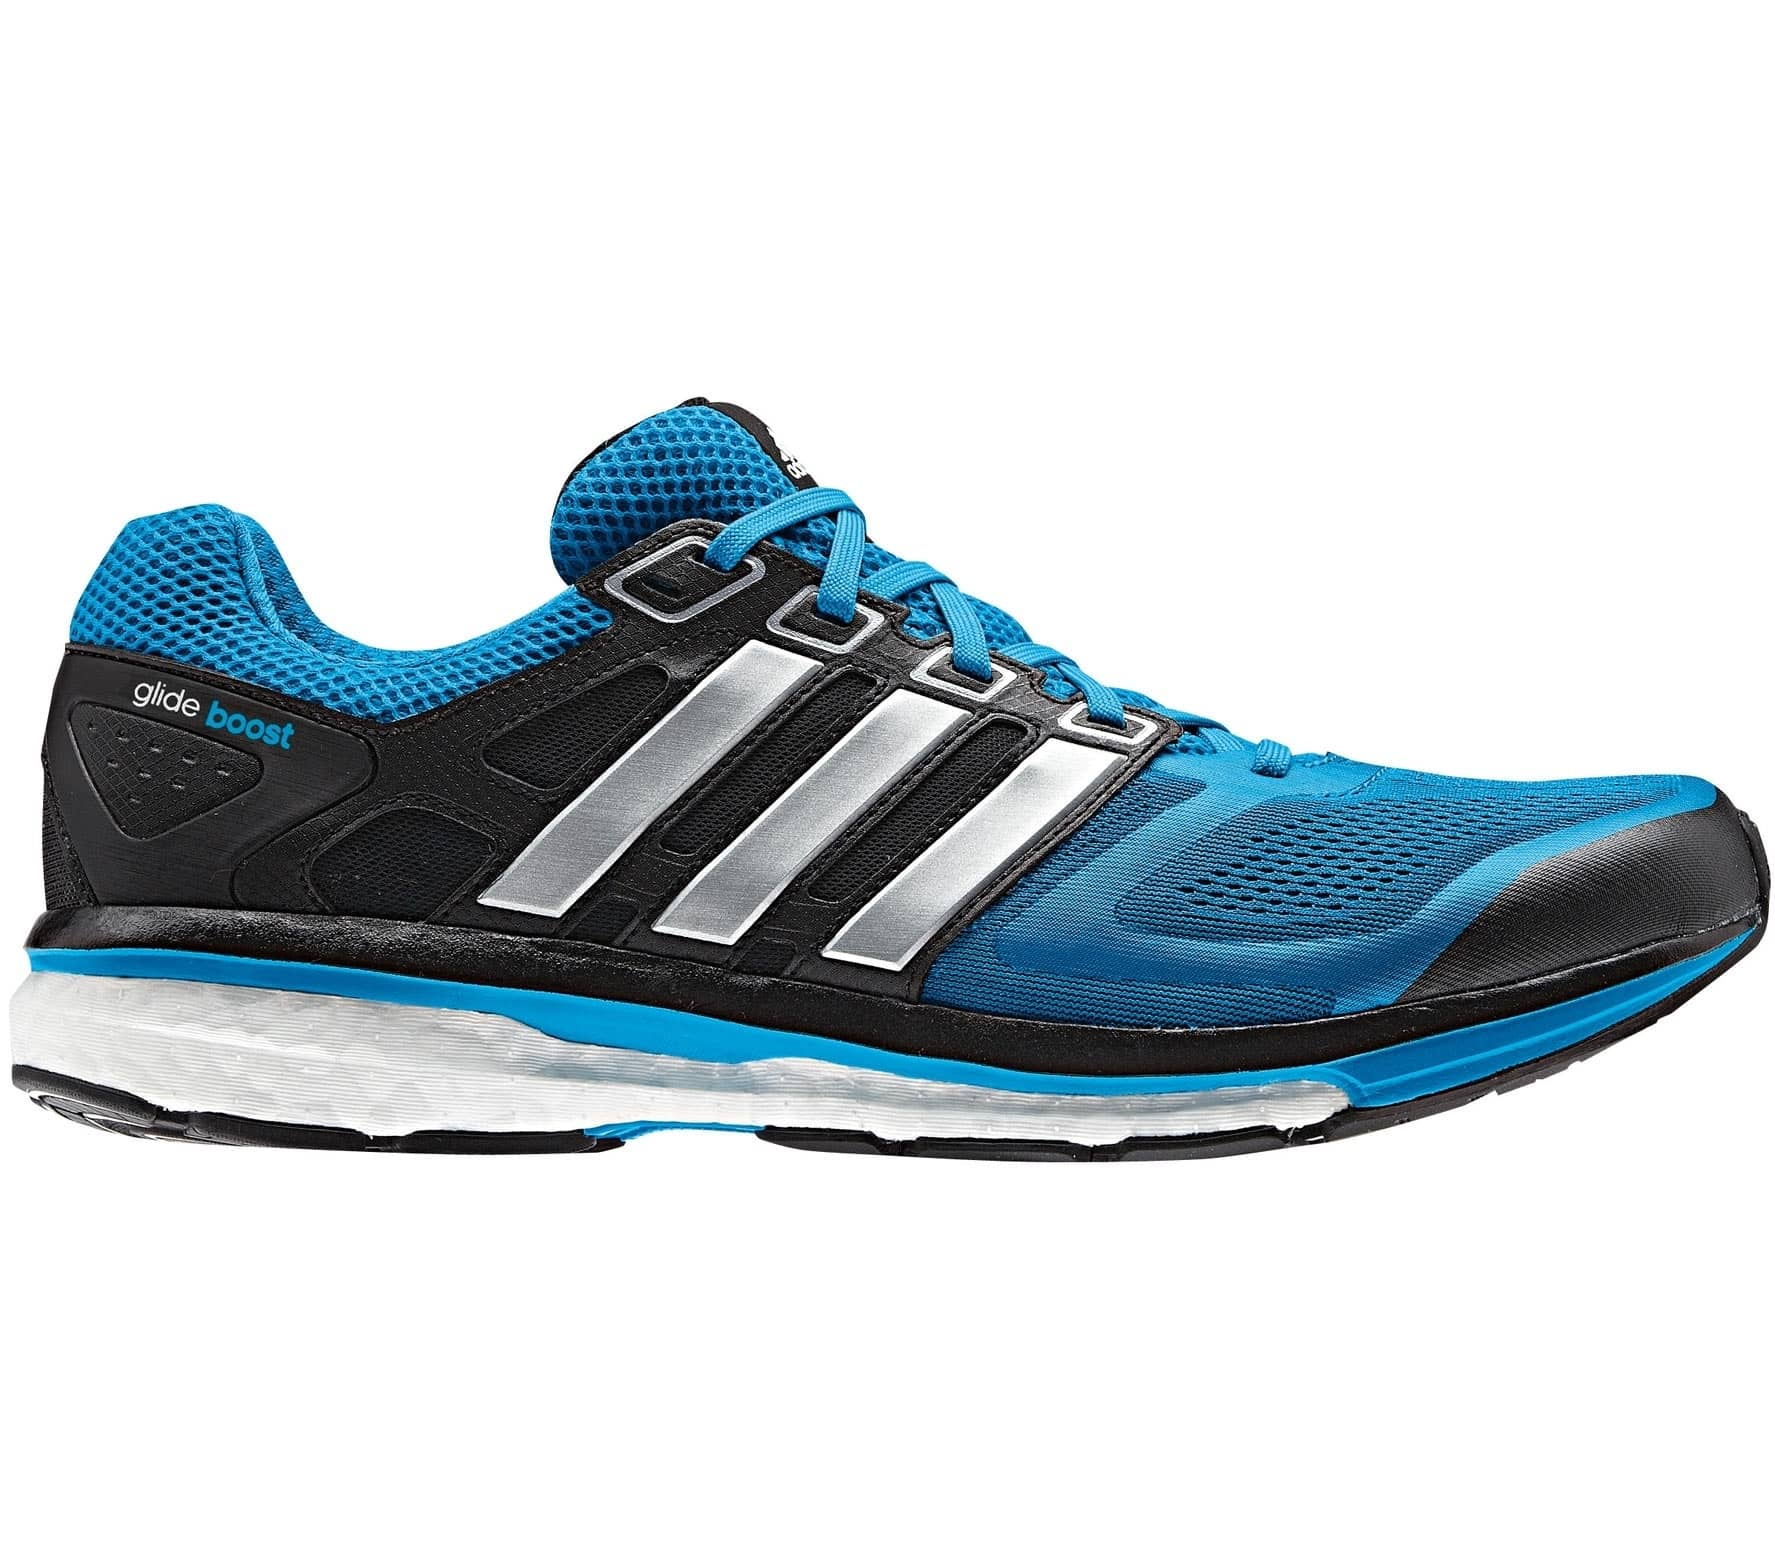 online retailer a7567 98046 Adidas - Supernova Glide 6 men s running shoes (blue black)